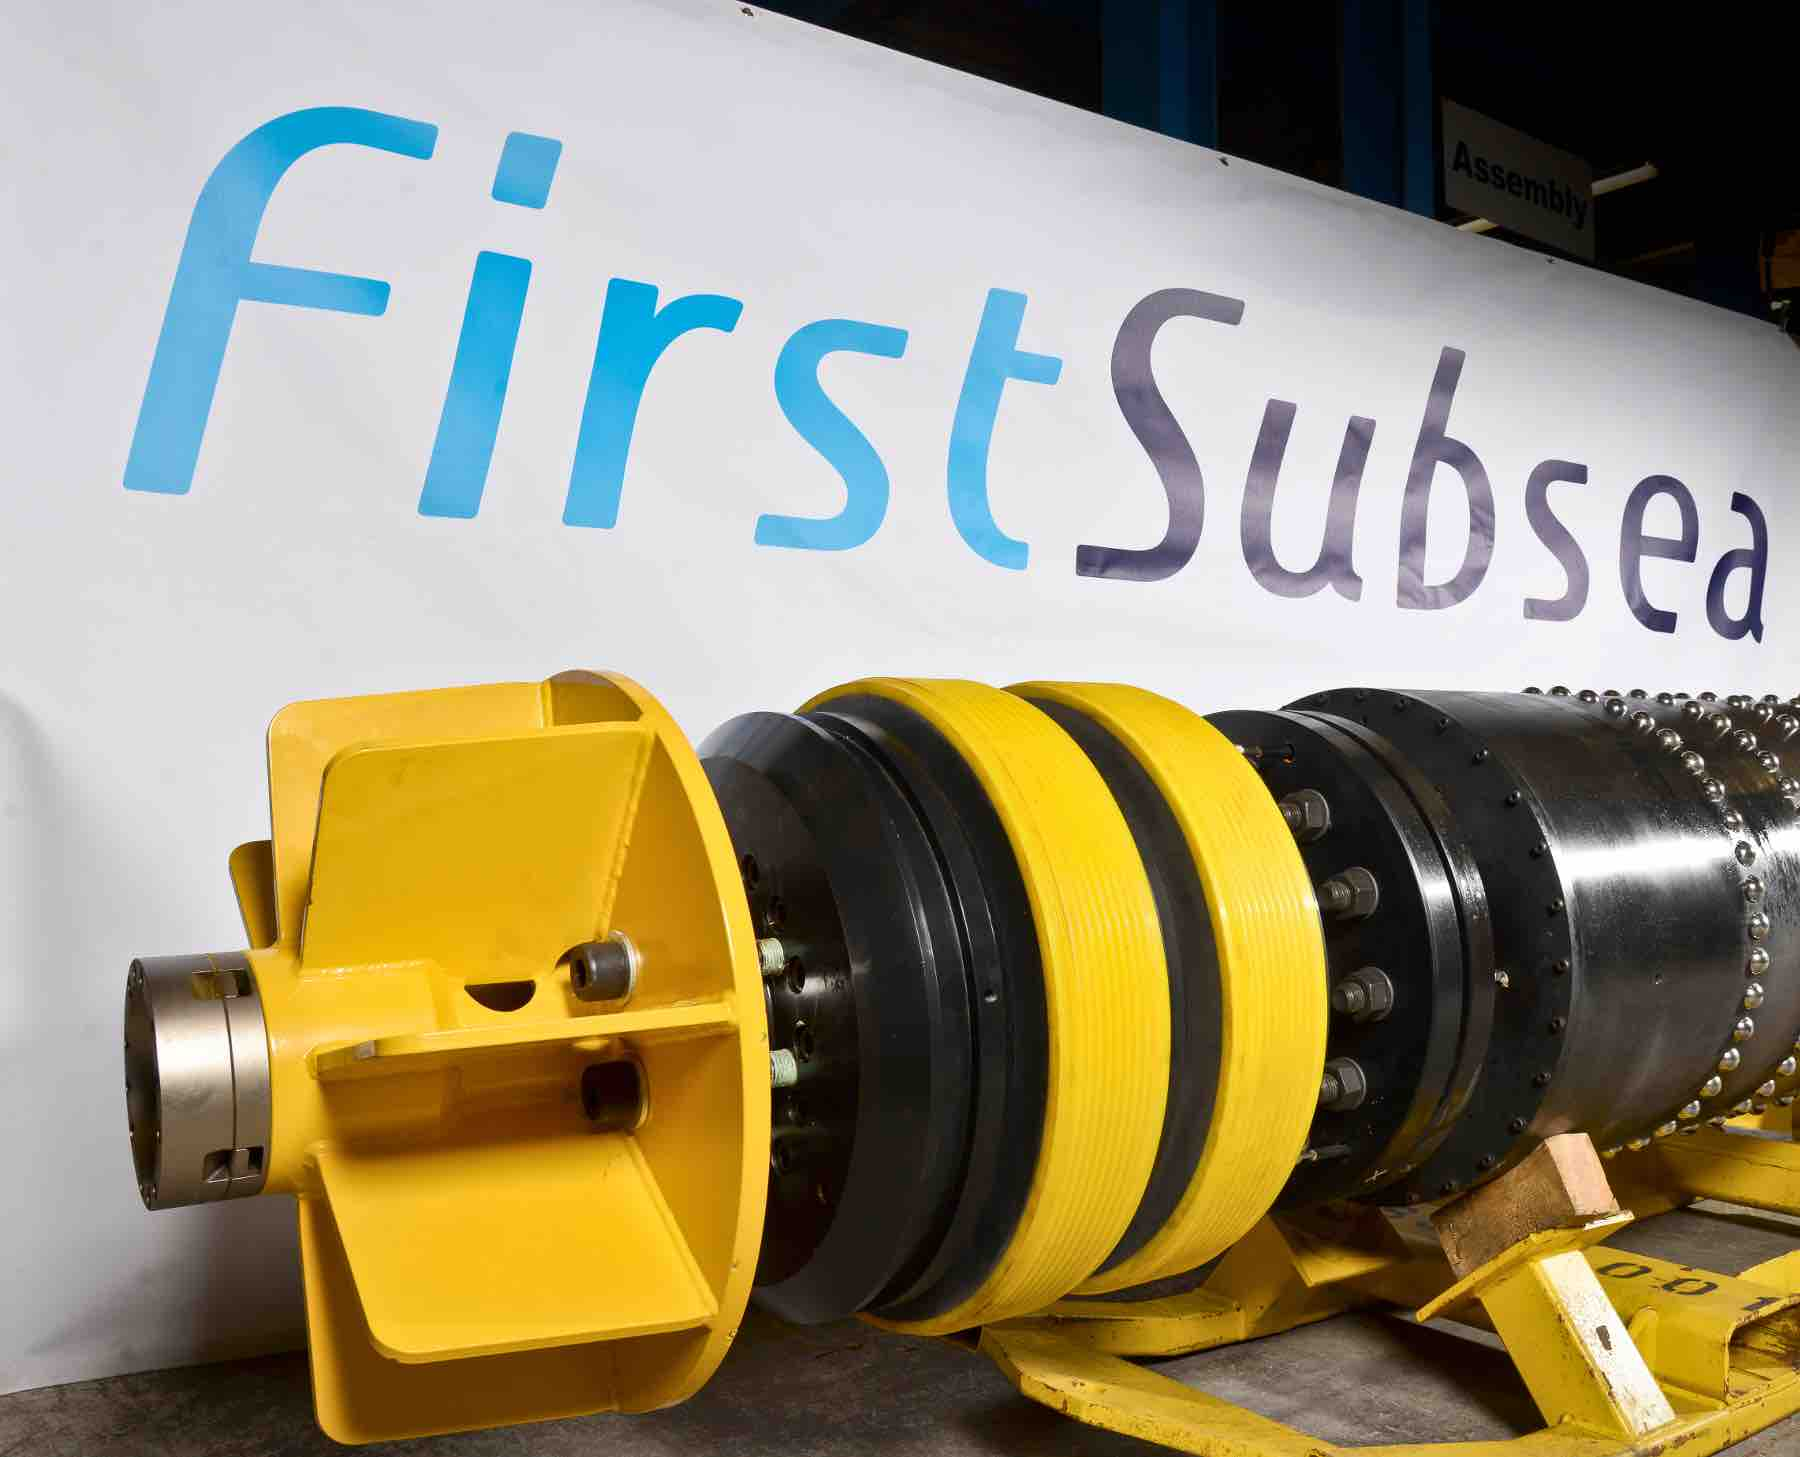 First Subsea PRT for Sur de Texas-Tuxpan pipeline.